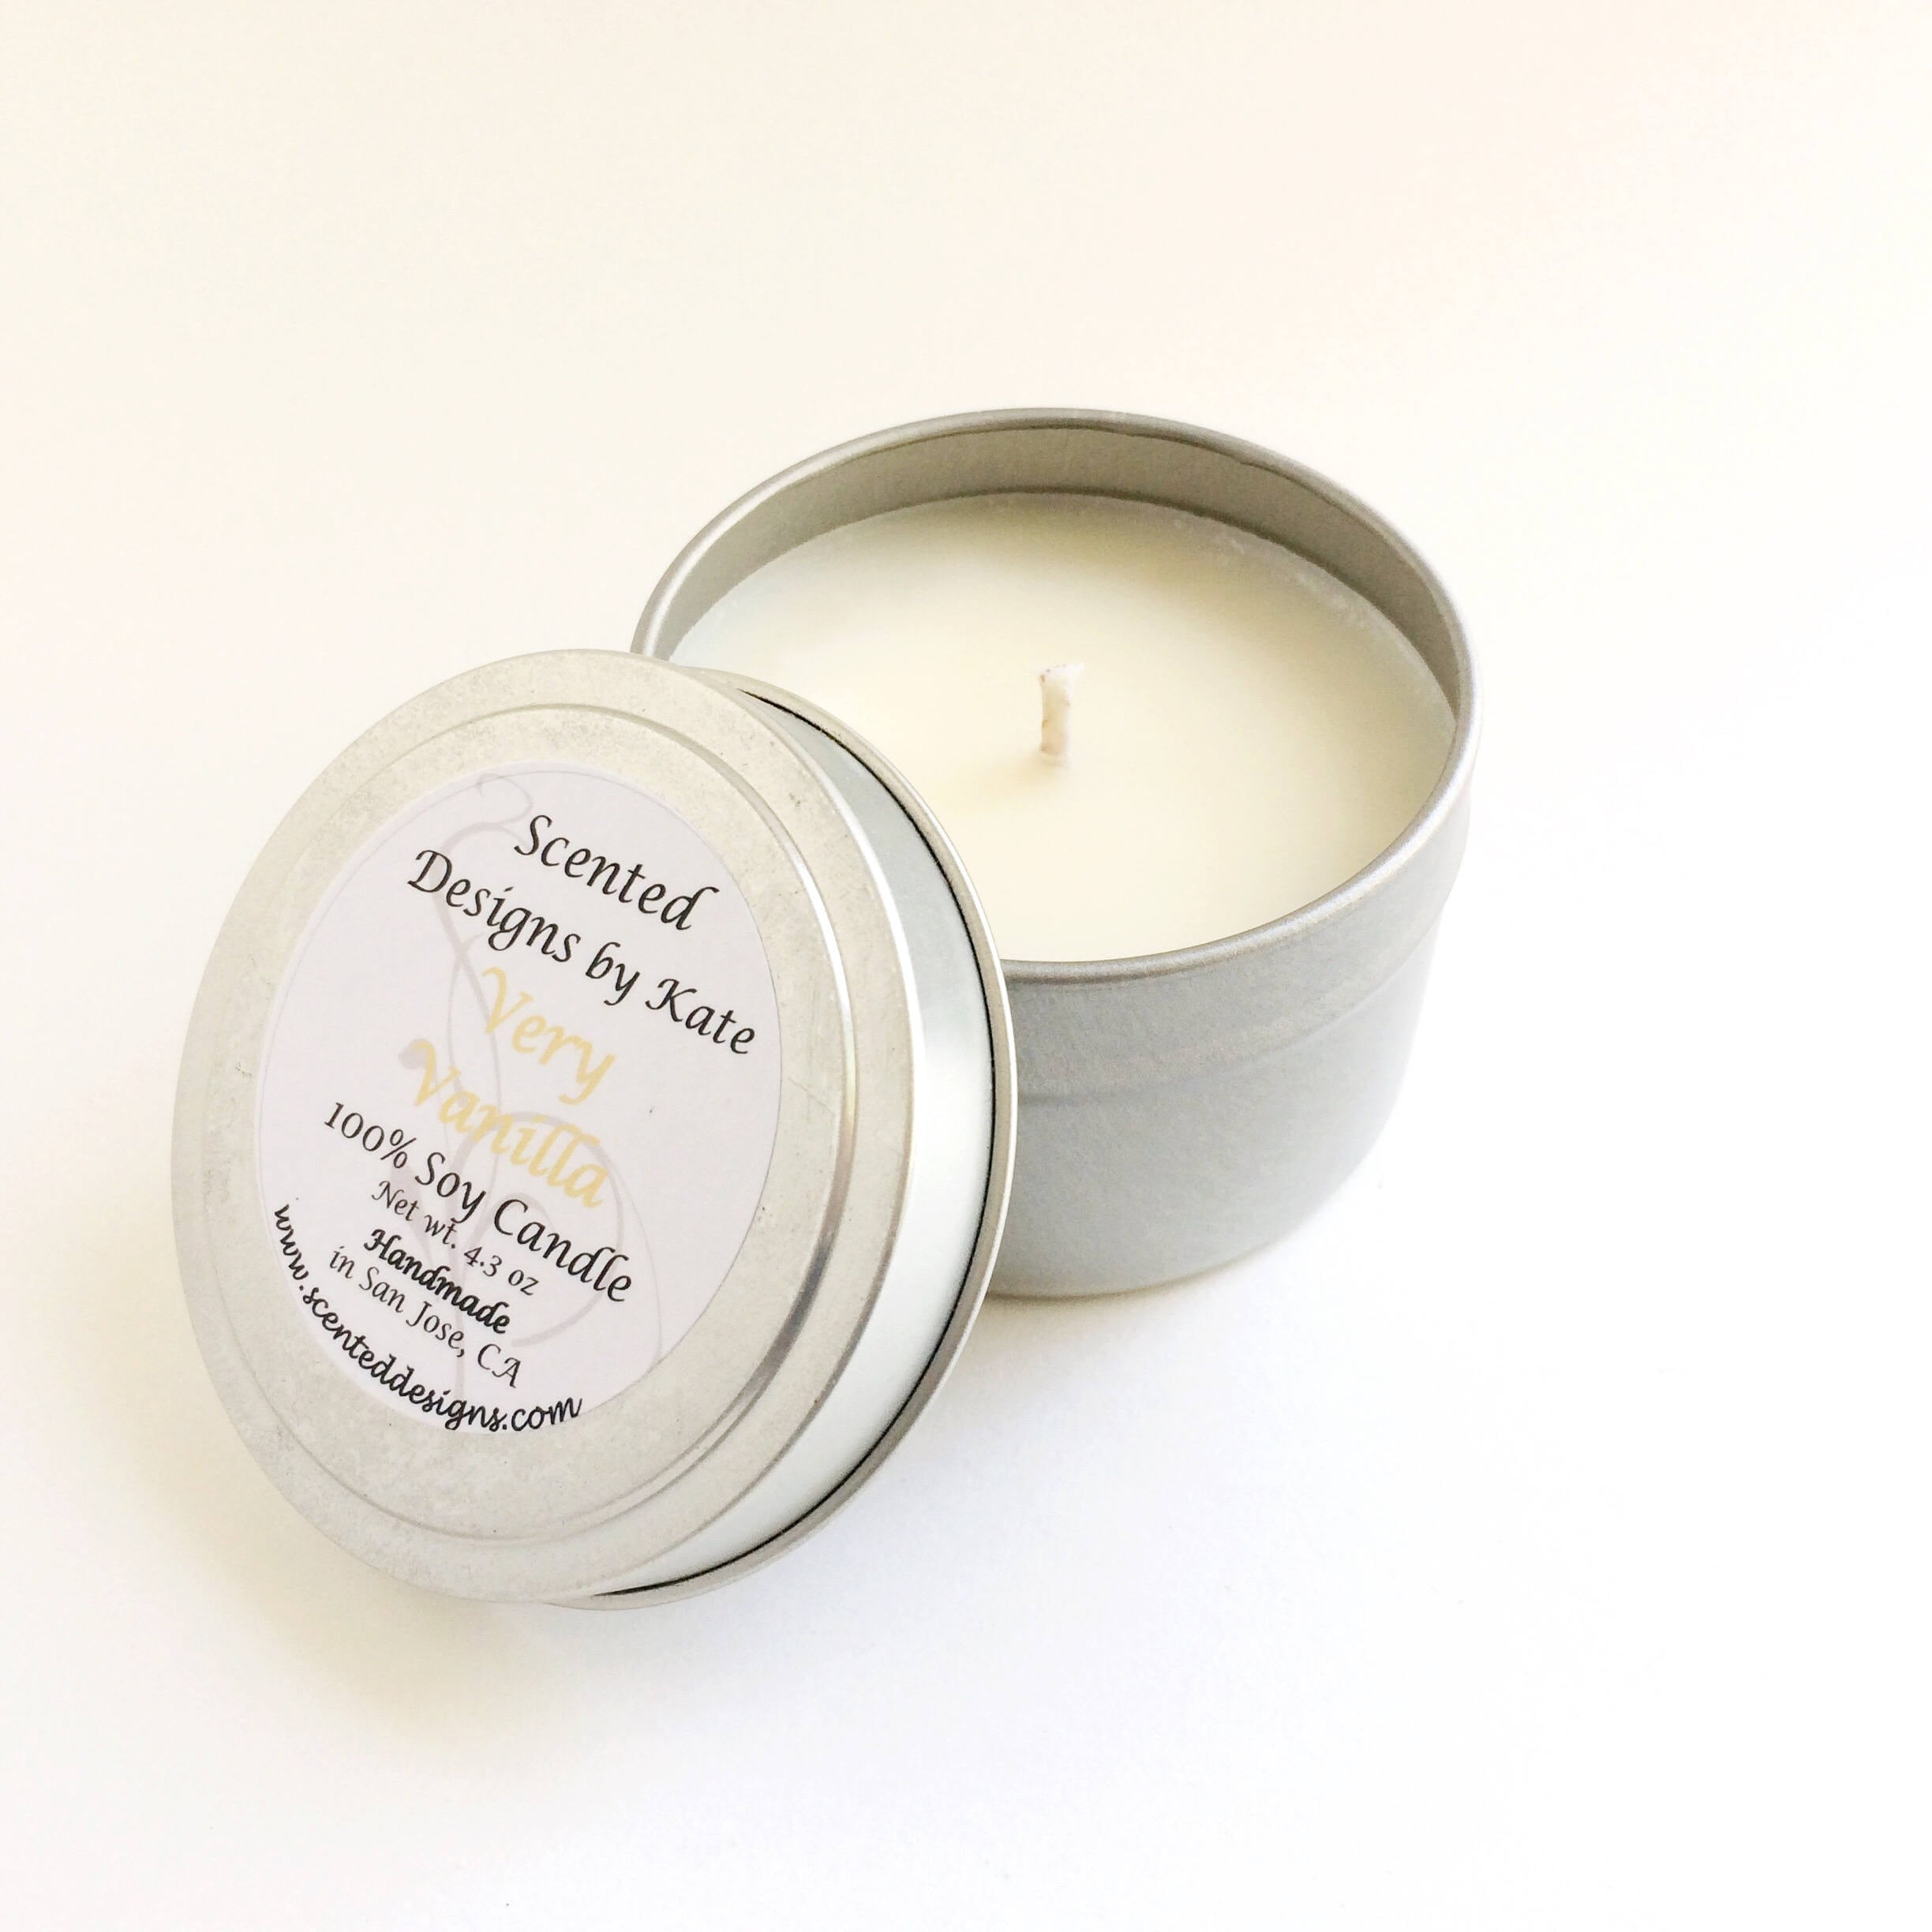 Vanilla Soy Candle | 8 Oz Mason Jar Candle | 6 Oz Travel Tin Candle ...